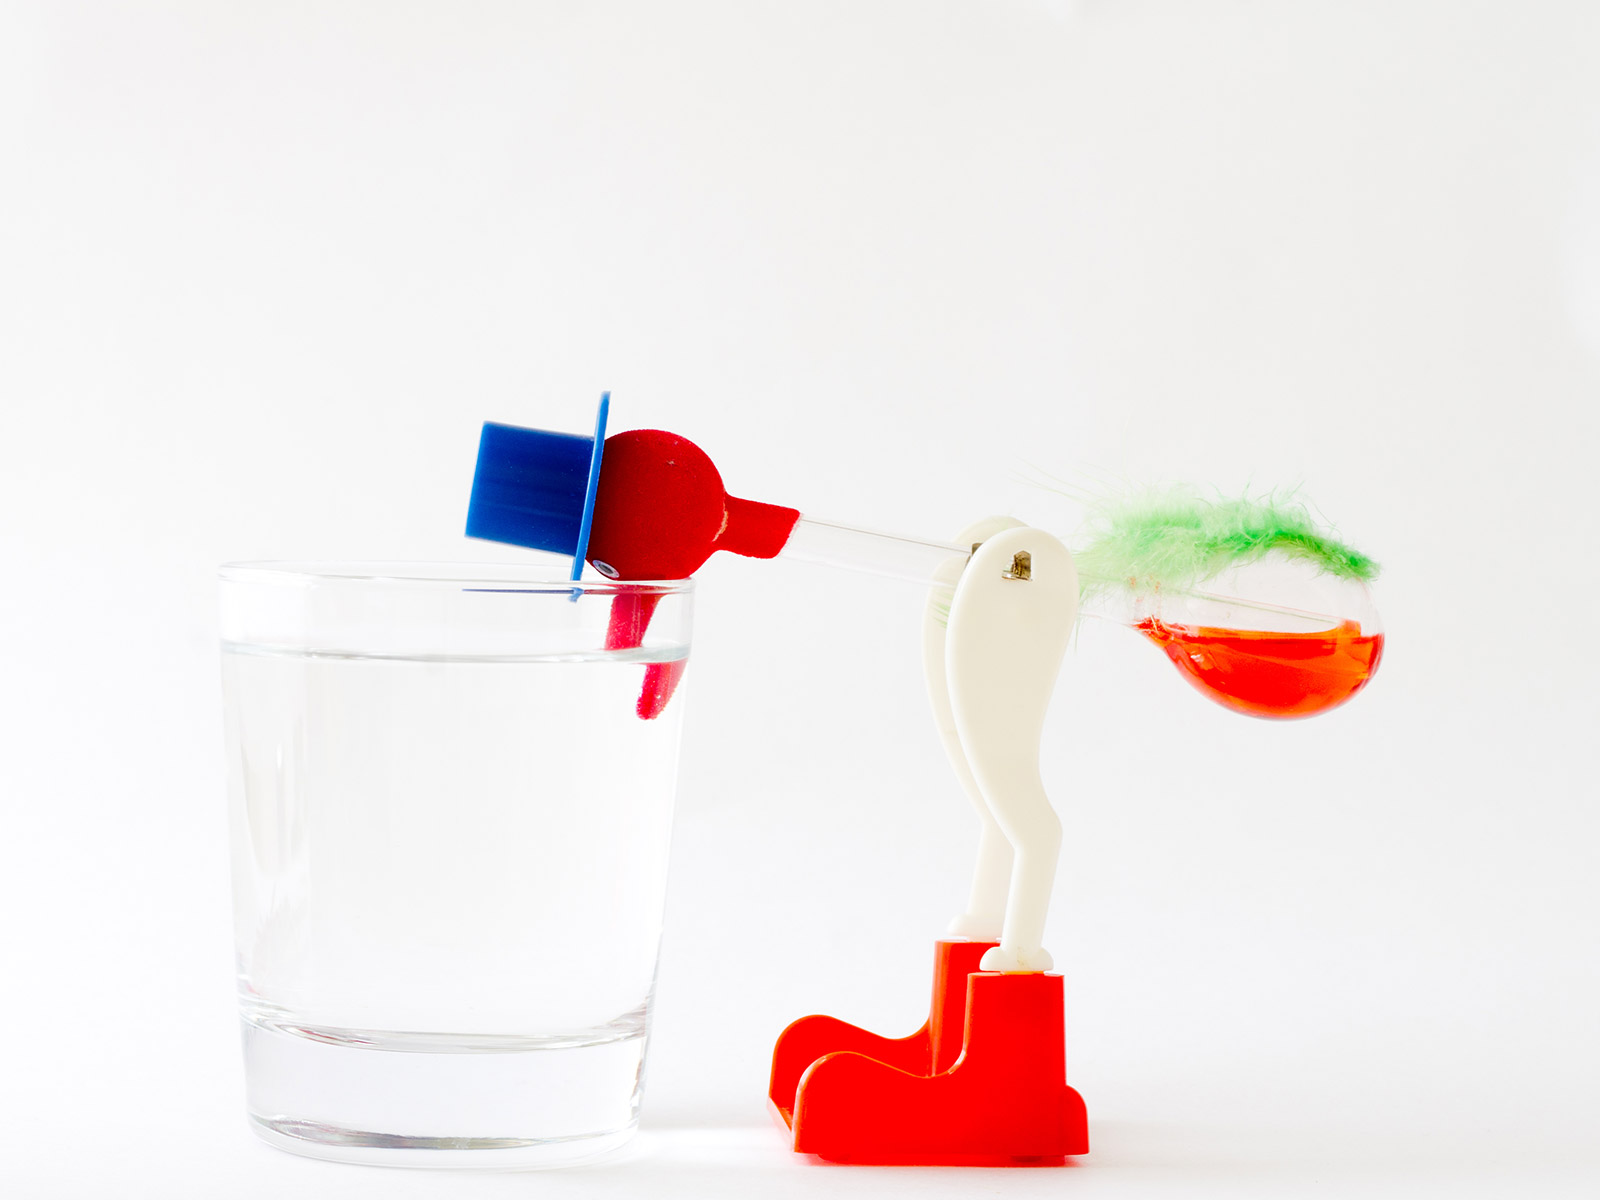 Learn How the 'Drinking Bird' Toy Works in This Incredibly Informative Video